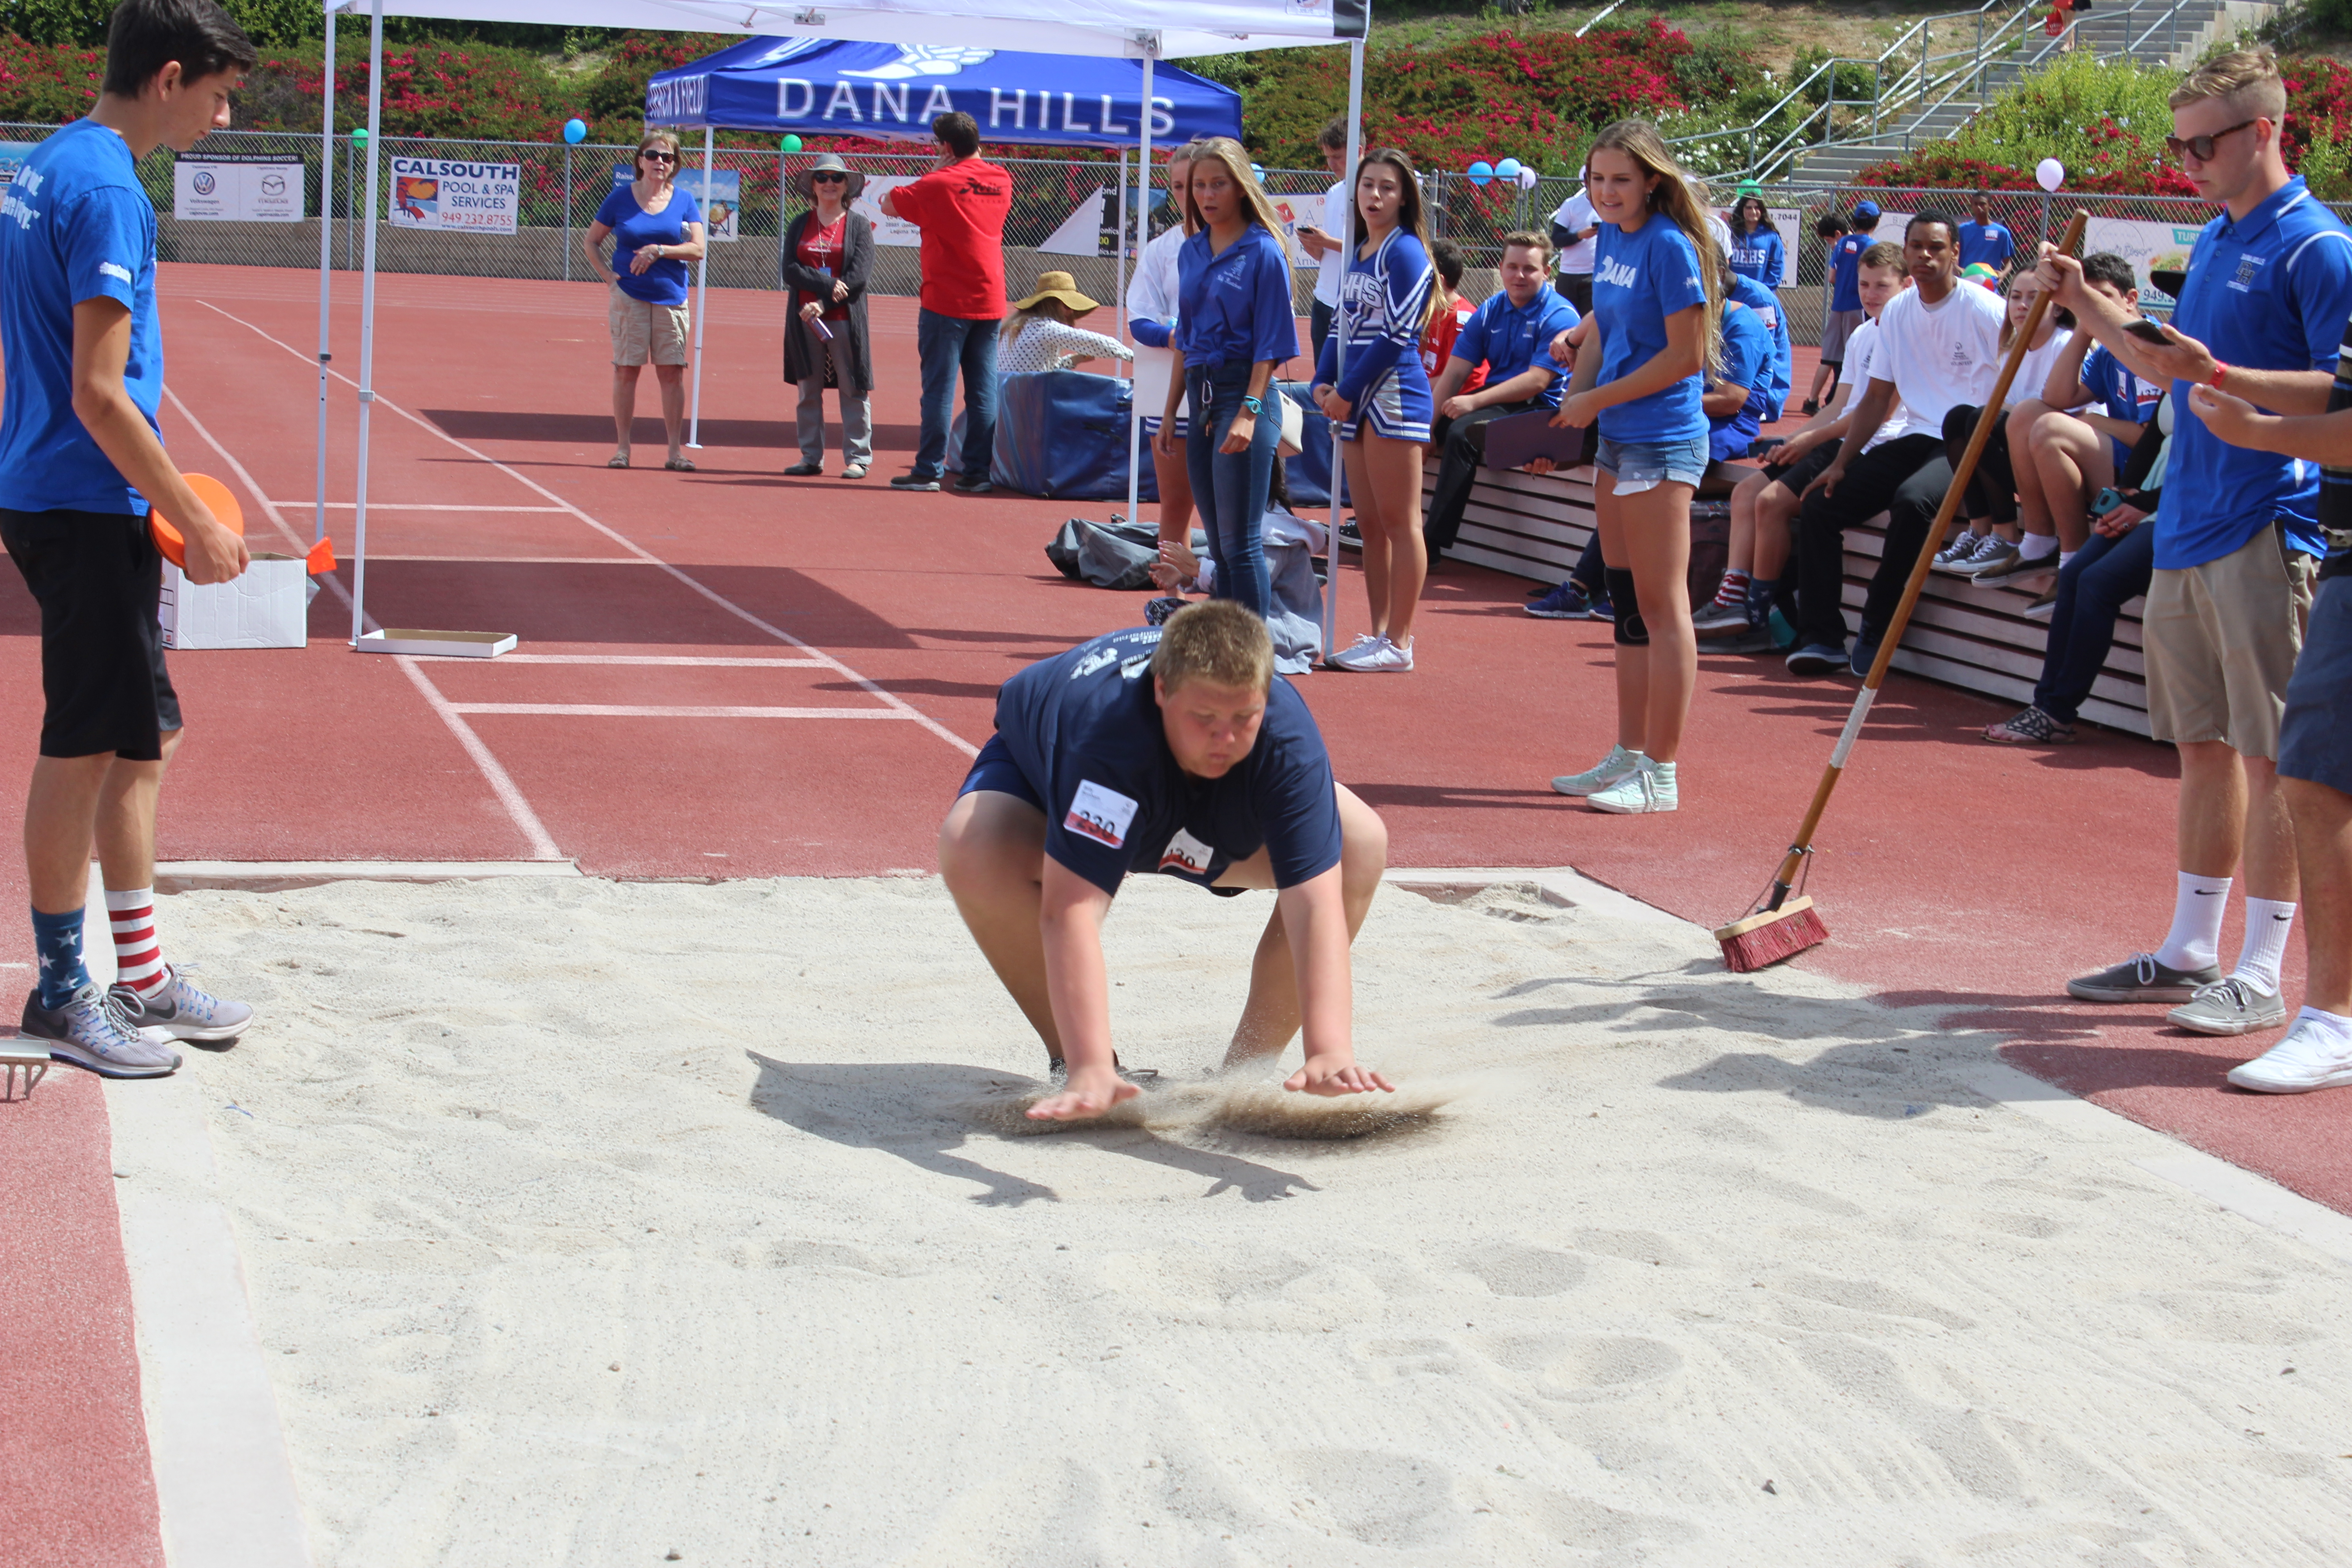 A CUSD student competes in the long jump during a Special Olympics event on April 17. Photo: Kristina Pritchett